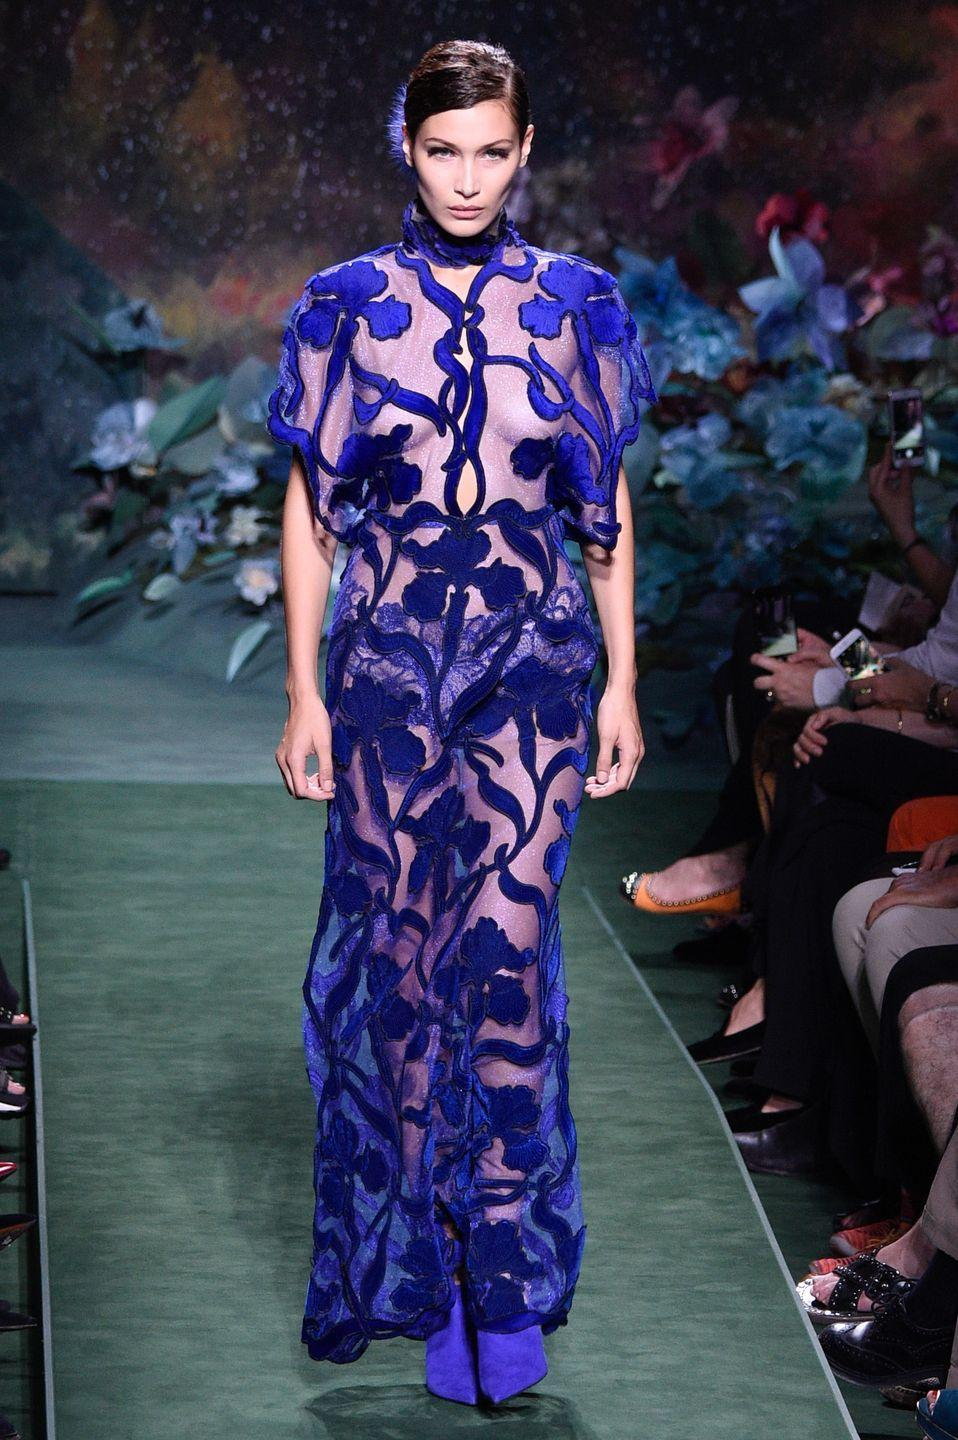 <p>Bella Hadid walks in the Fendi Haute Couture show wearing a sheer blue gown, 5 July 2017</p>